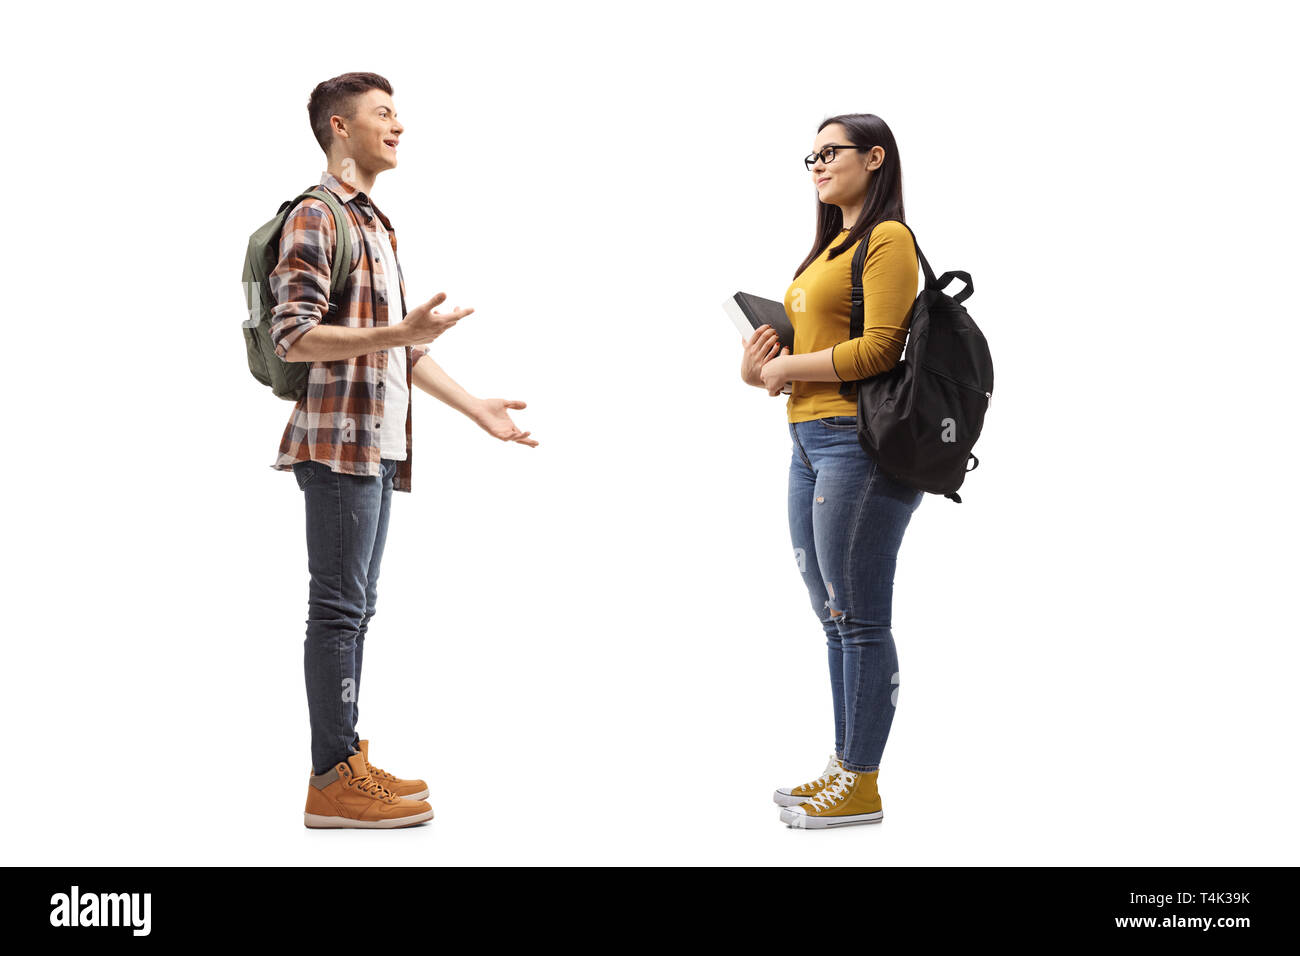 Full length profile shot of male and female students talking isolated on white background - Stock Image